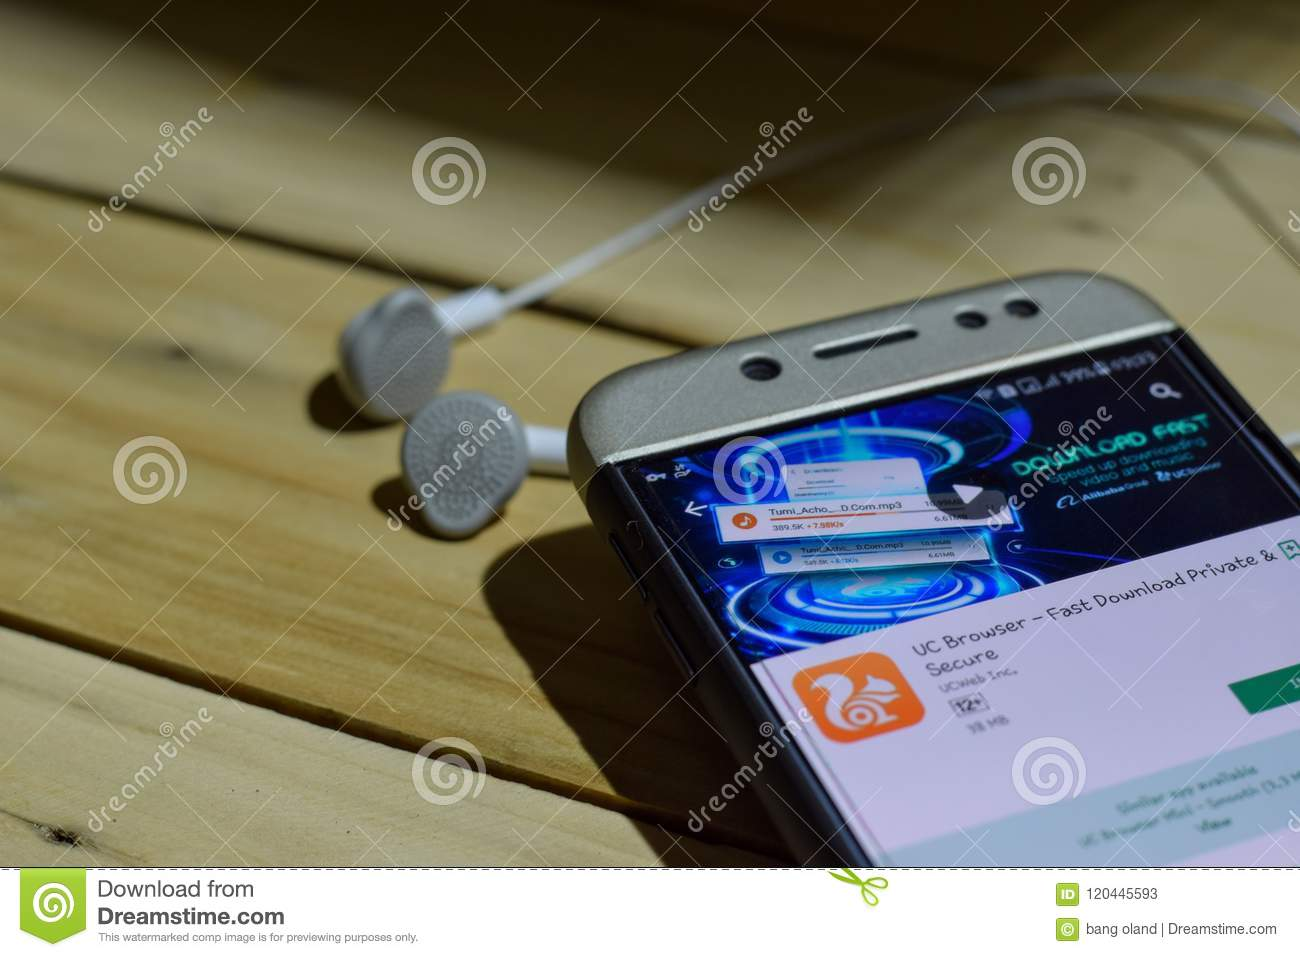 UC Browser Dev Application On Smartphone Screen  Fast